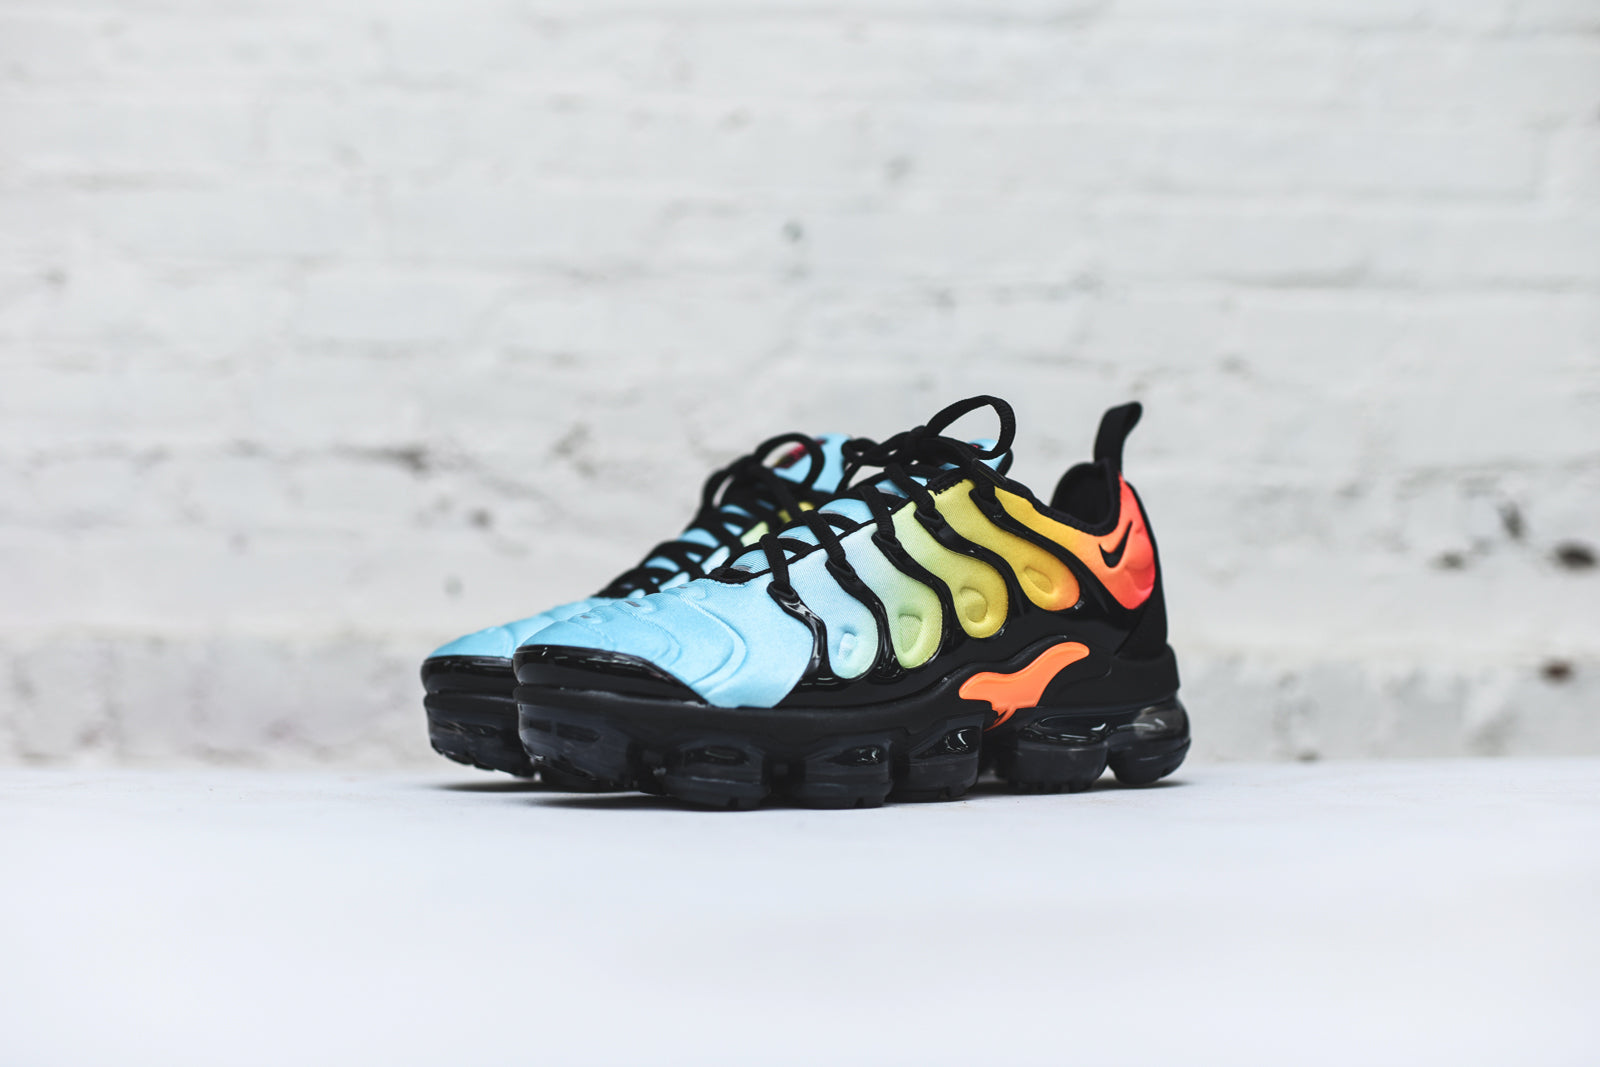 Nike WMNS Air Vapormax Plus - Black / Teal / Red